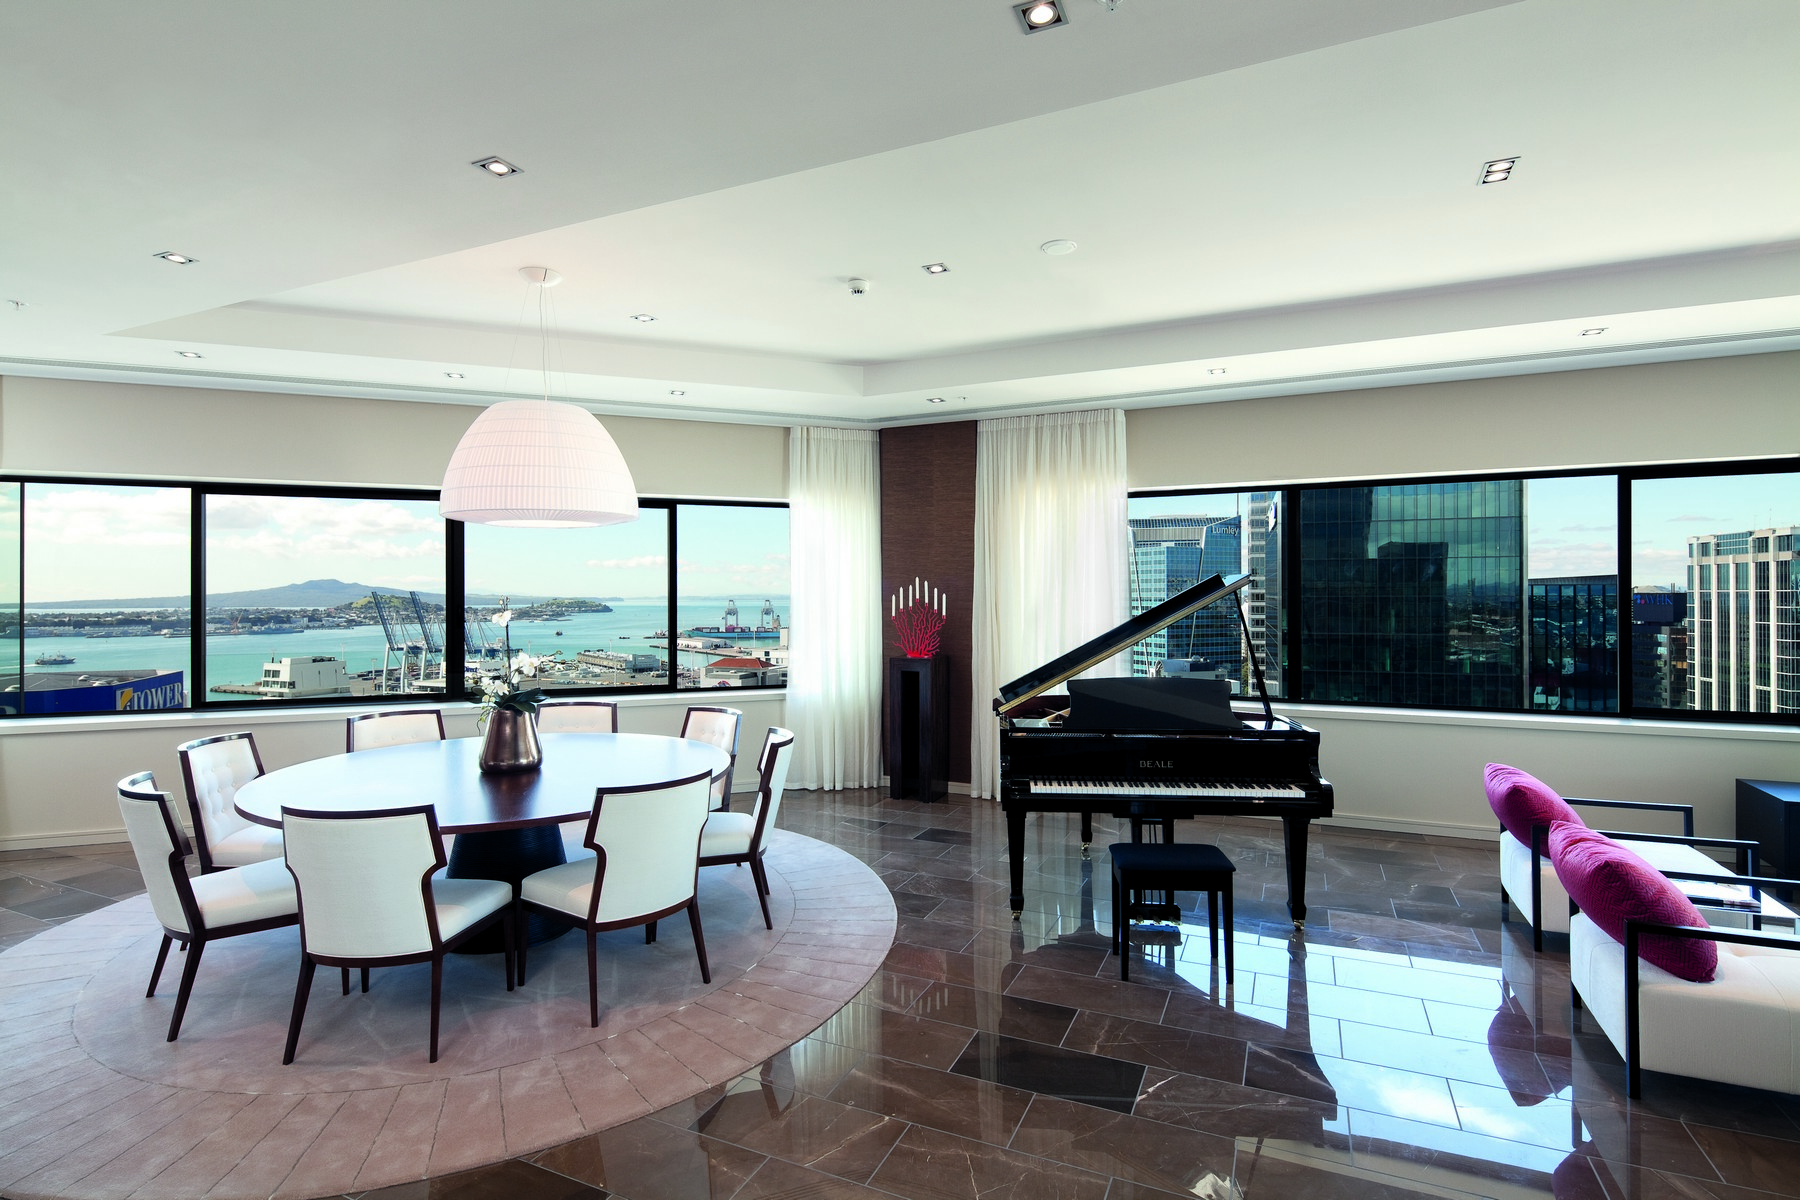 Property For Sale at The Stamford Residences, 26 Albert Street, Sub Penthouse 2206